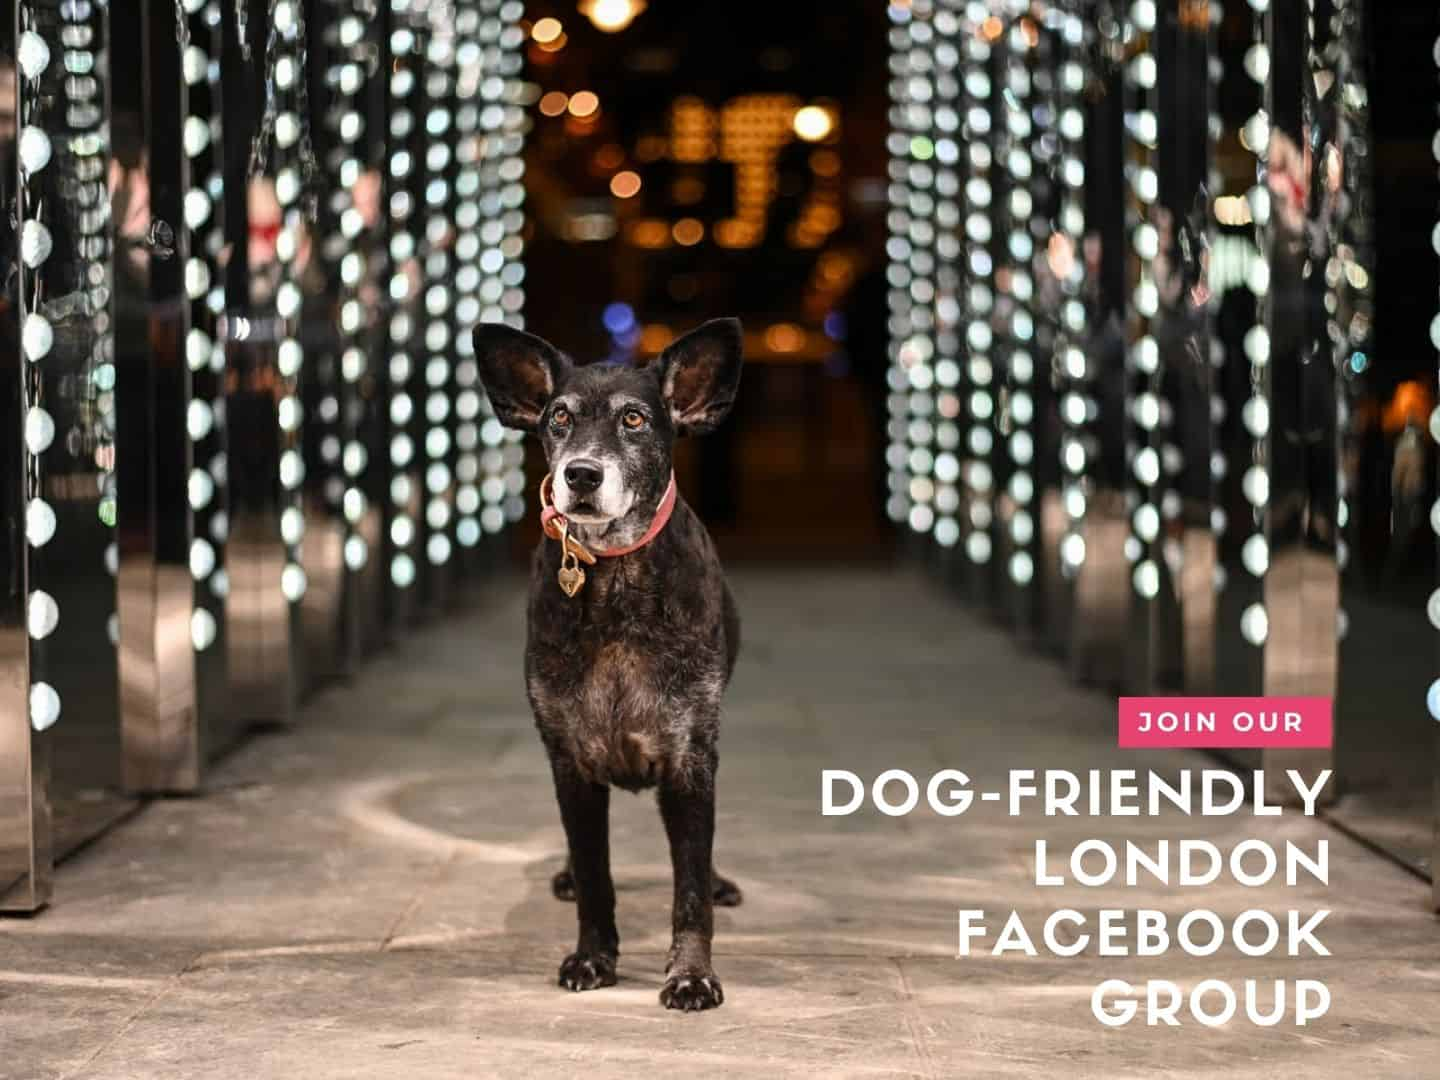 Join our Dog-friendly London Facebook Group